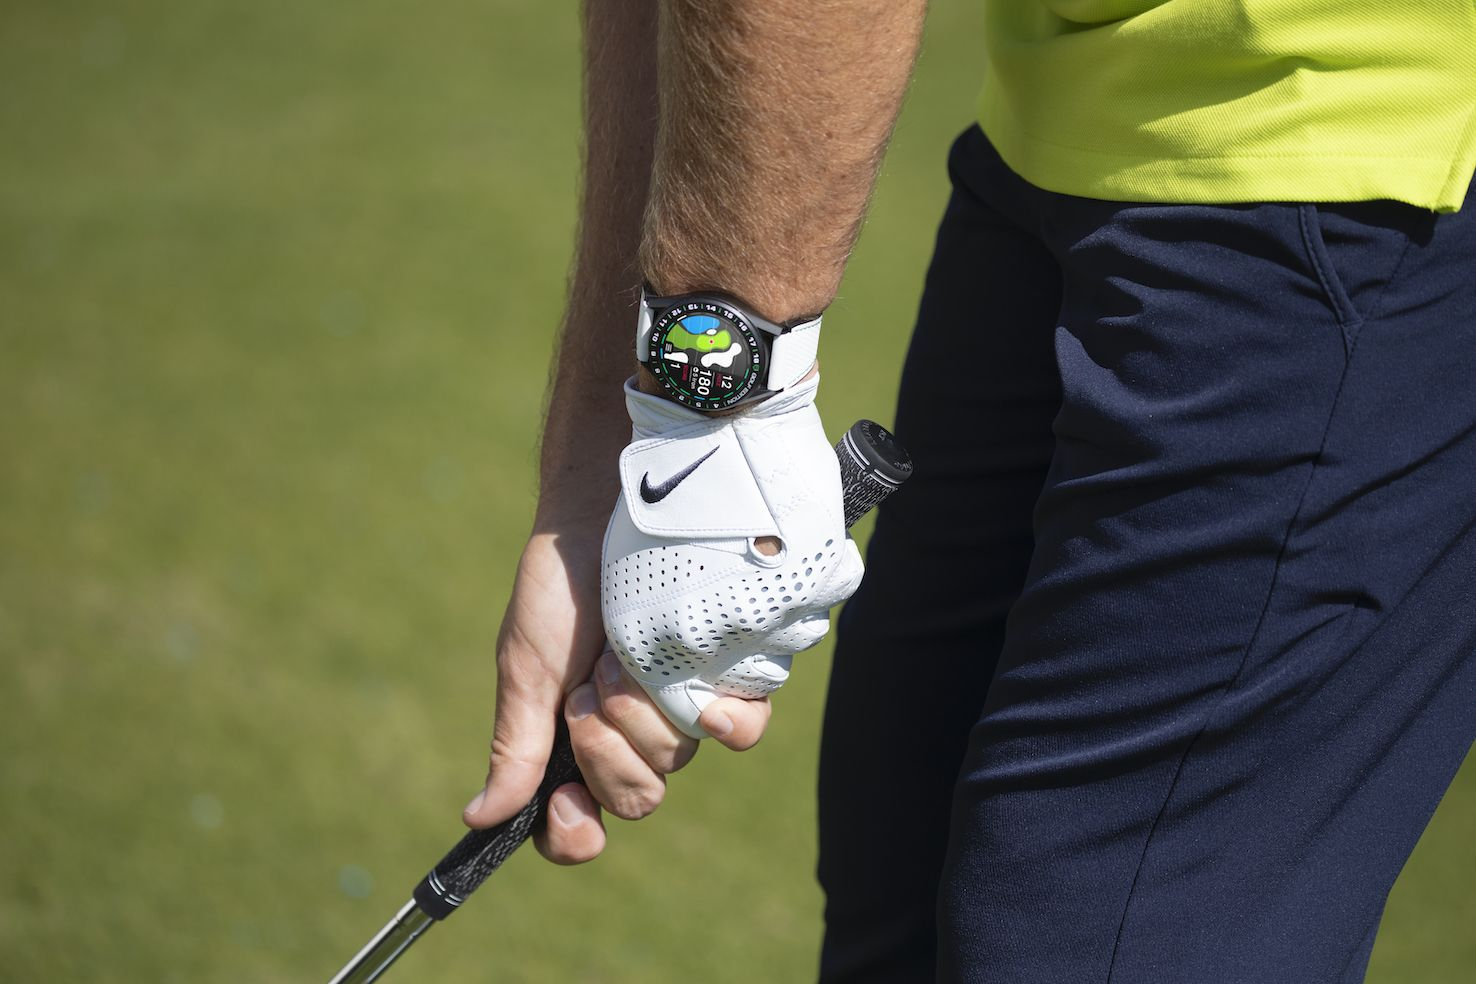 Golfer Tommy Fleetwood is a Fan of the New Tag Heuer Connected Golf Edition